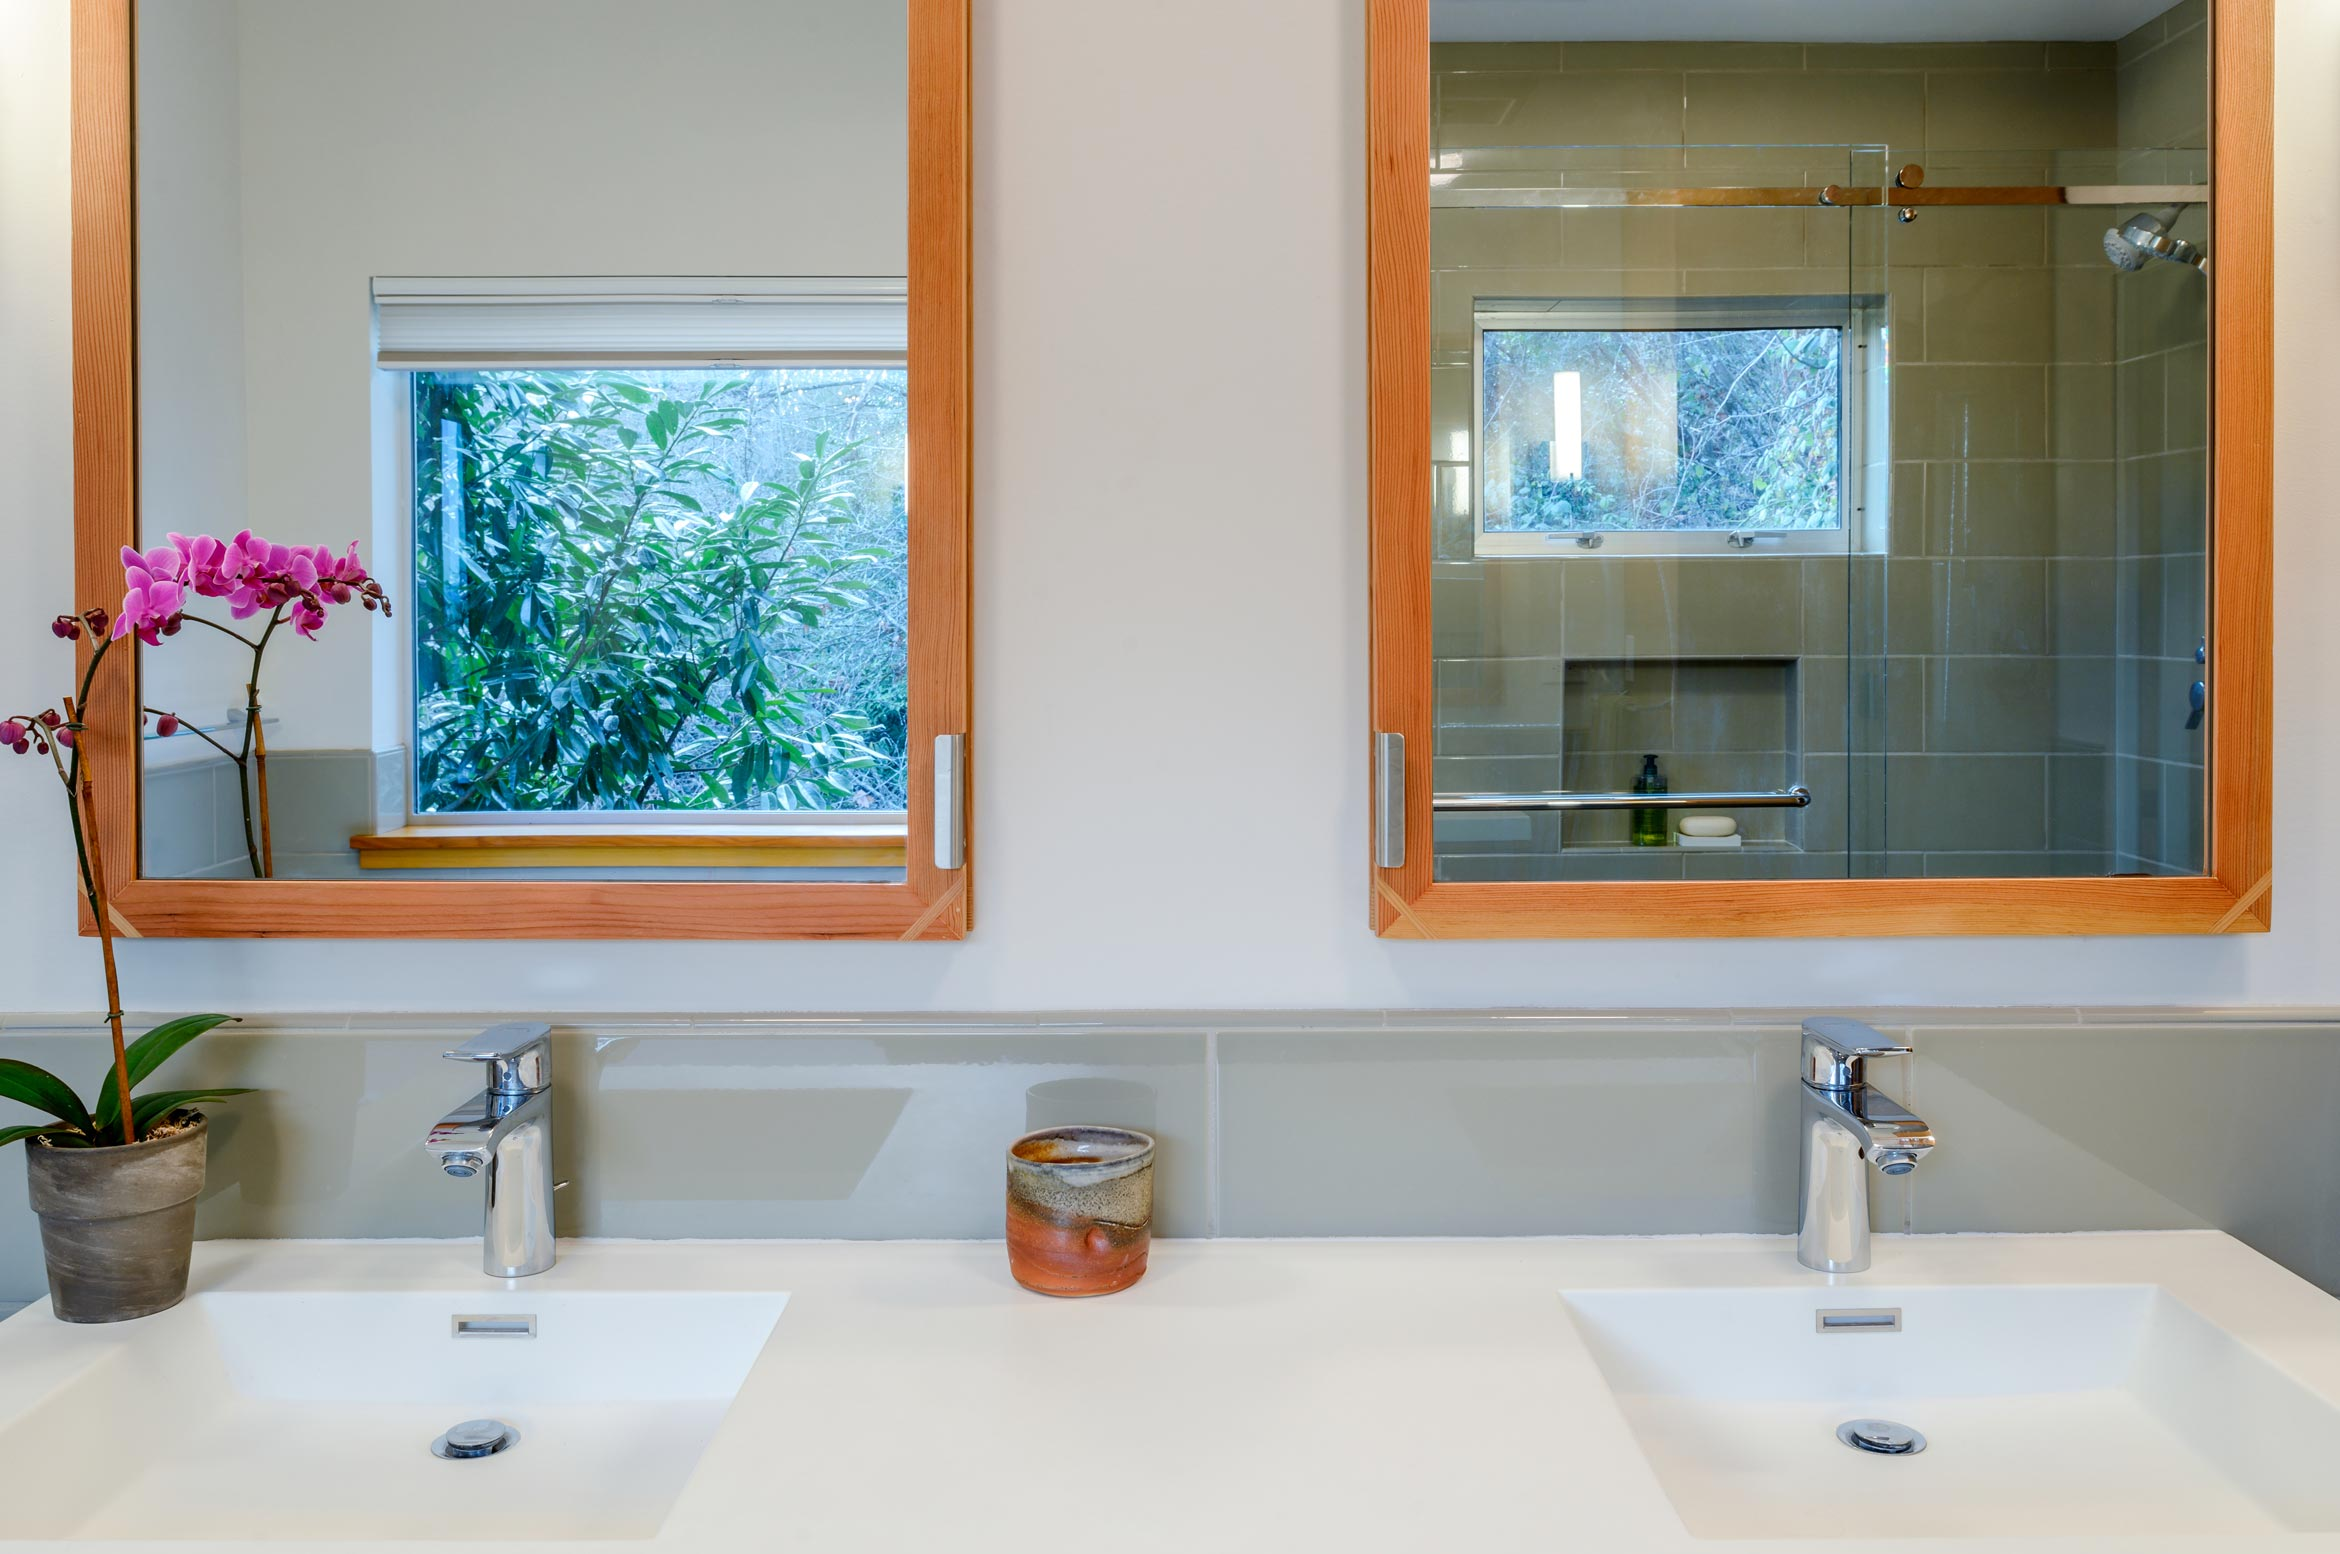 Bathroom Mirrors Seattle Bathroom Remodeling Pics From Portland And Seattle Seward Park